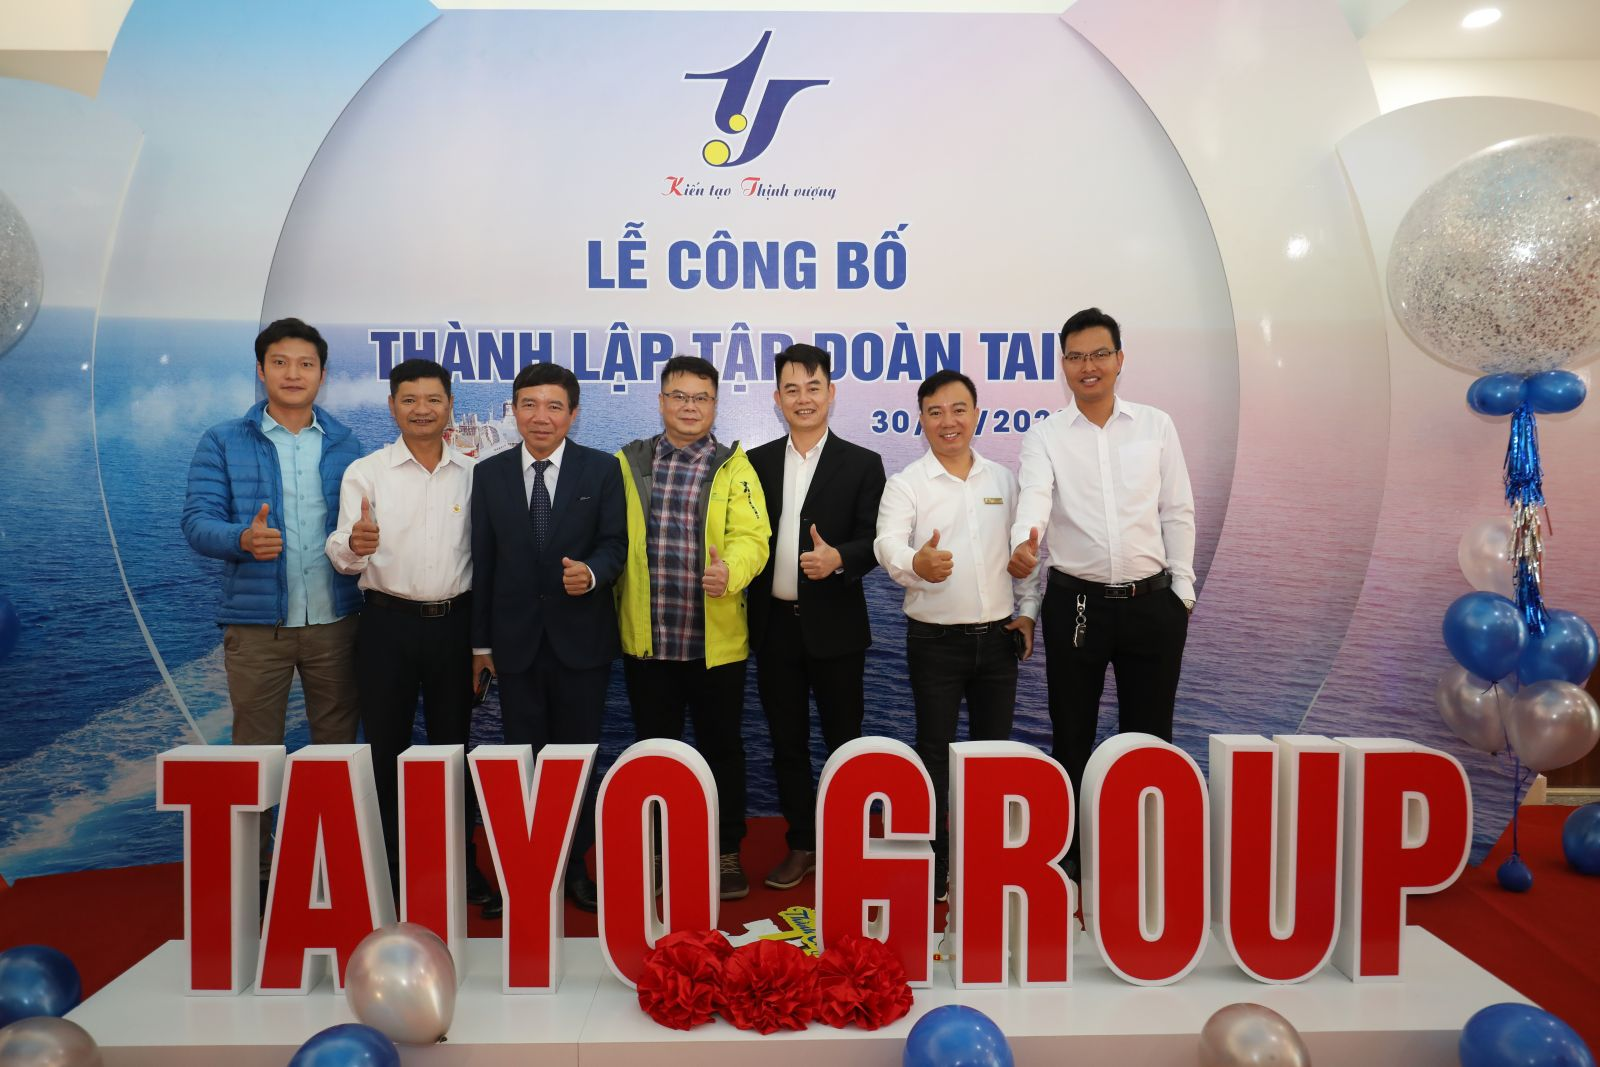 Preliminary conference for 10 months of production and business activities in 2020 of Hai Long Construction Joint Stock Company, announcing the inauguration of Taiyo Building and establishment of Taiyo Group